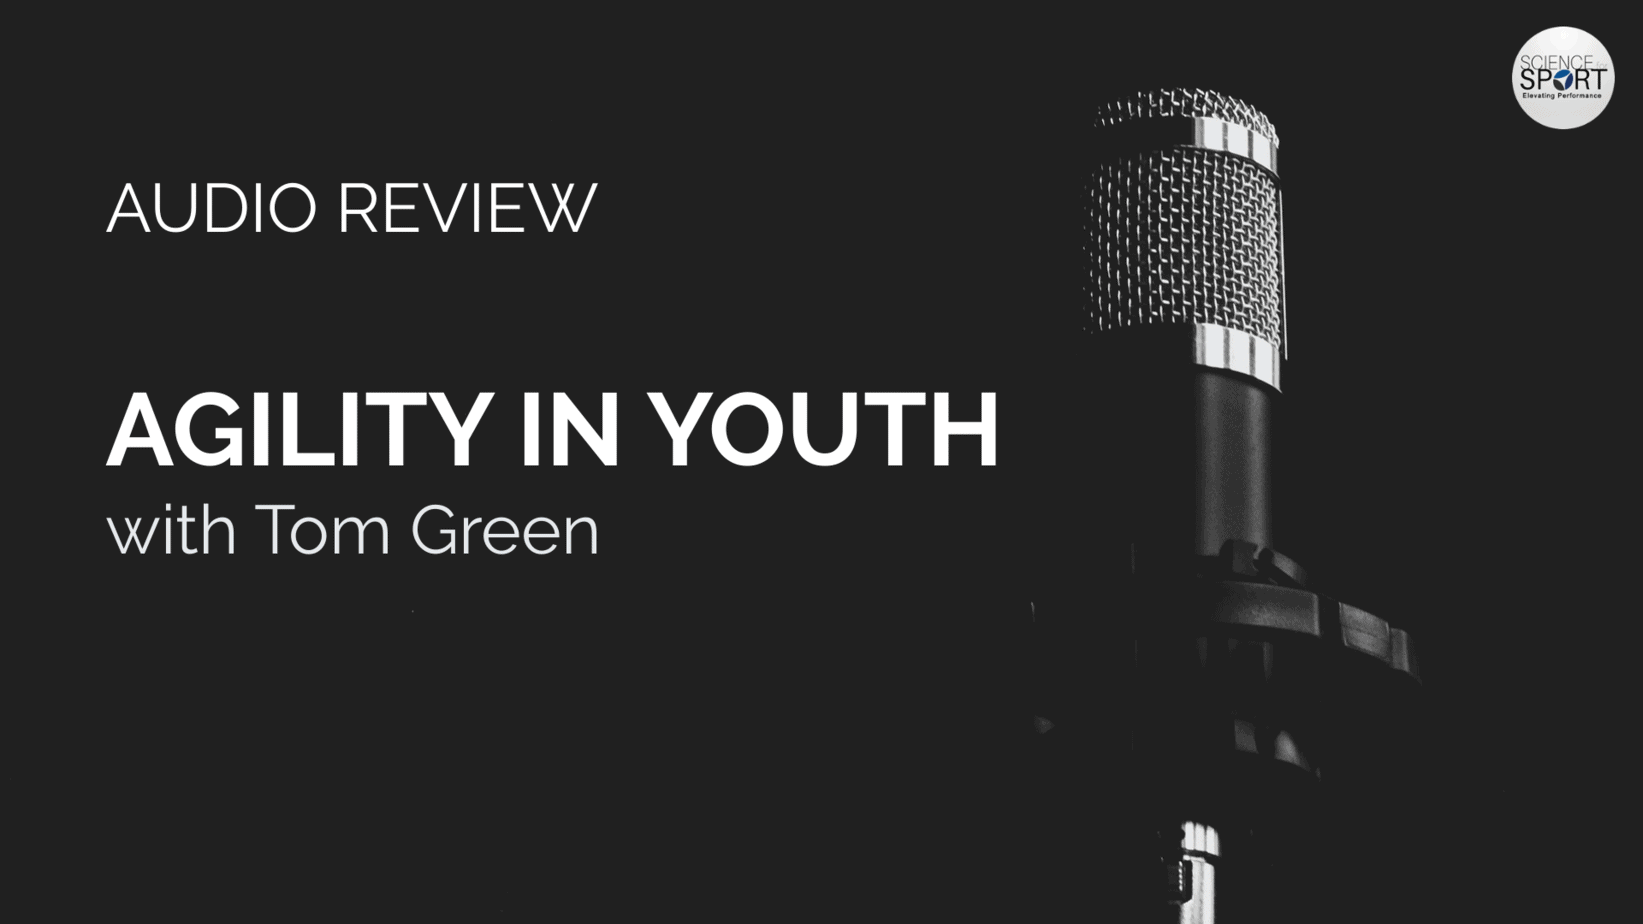 Agility in Youth - Science for Sport - Audio Review